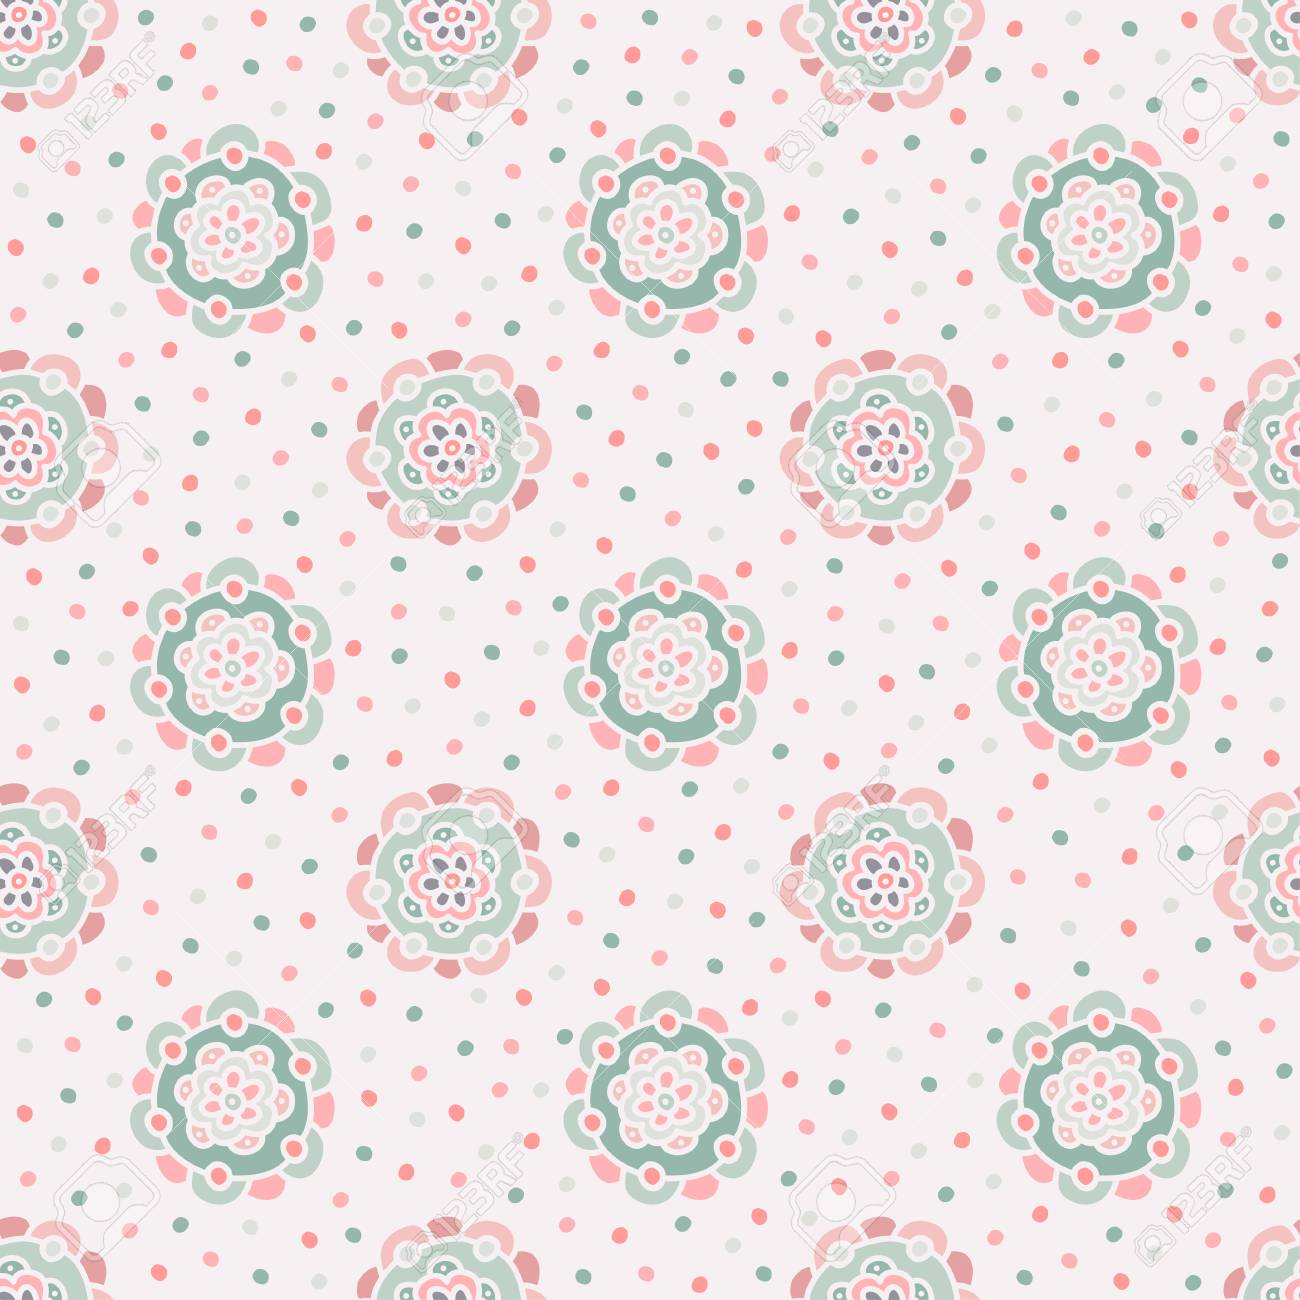 Doodle Floral Pattern Seamless Boho Background Beautiful Pastel Wallpaper Vector Illustration Stock